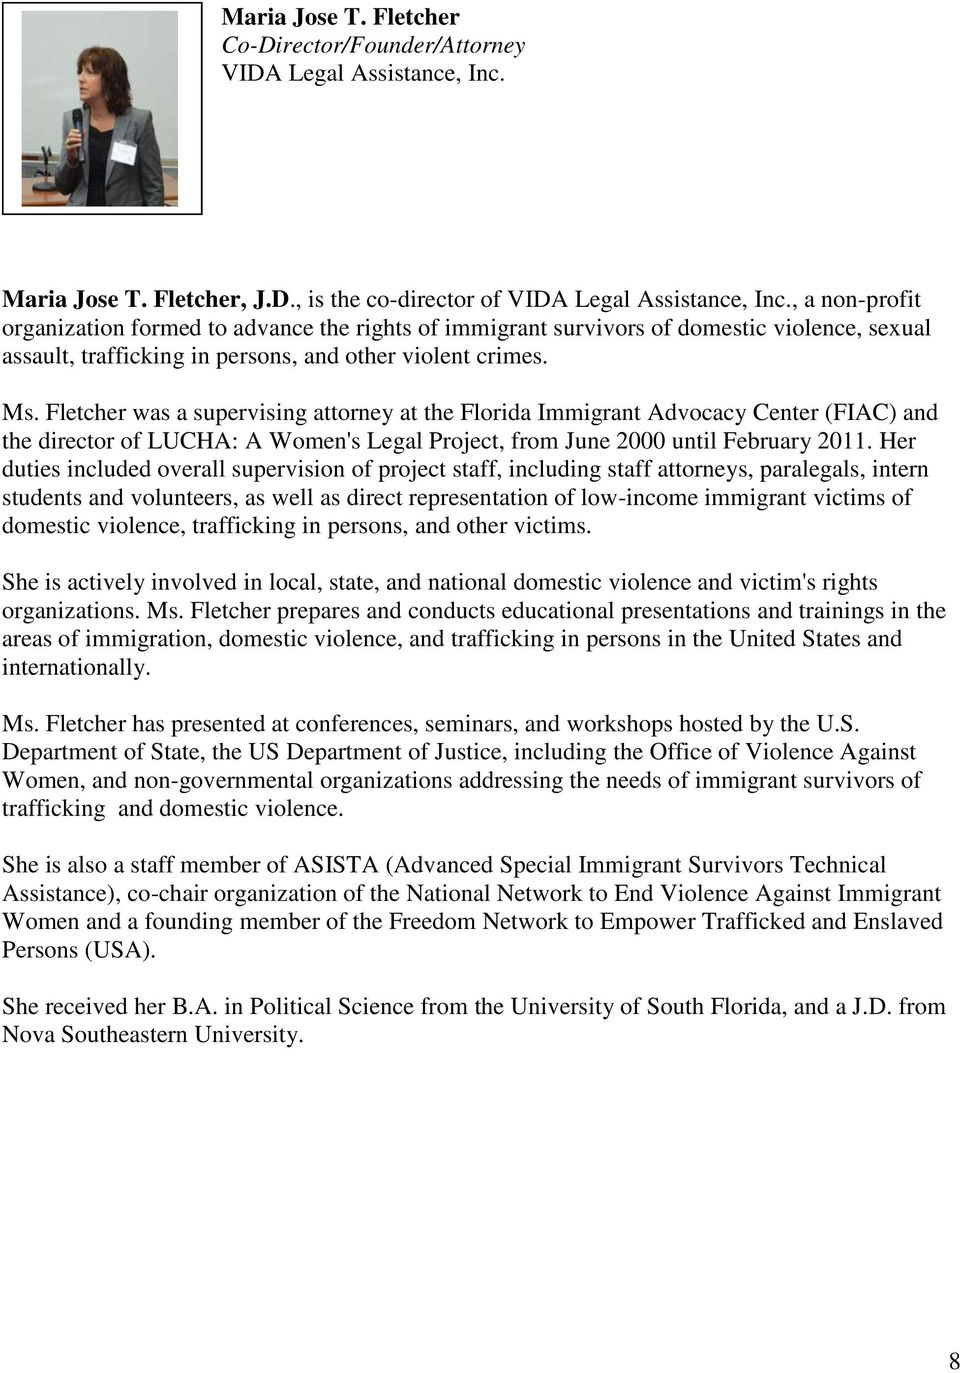 Fletcher was a supervising attorney at the Florida Immigrant Advocacy Center (FIAC) and the director of LUCHA: A Women's Legal Project, from June 2000 until February 2011.